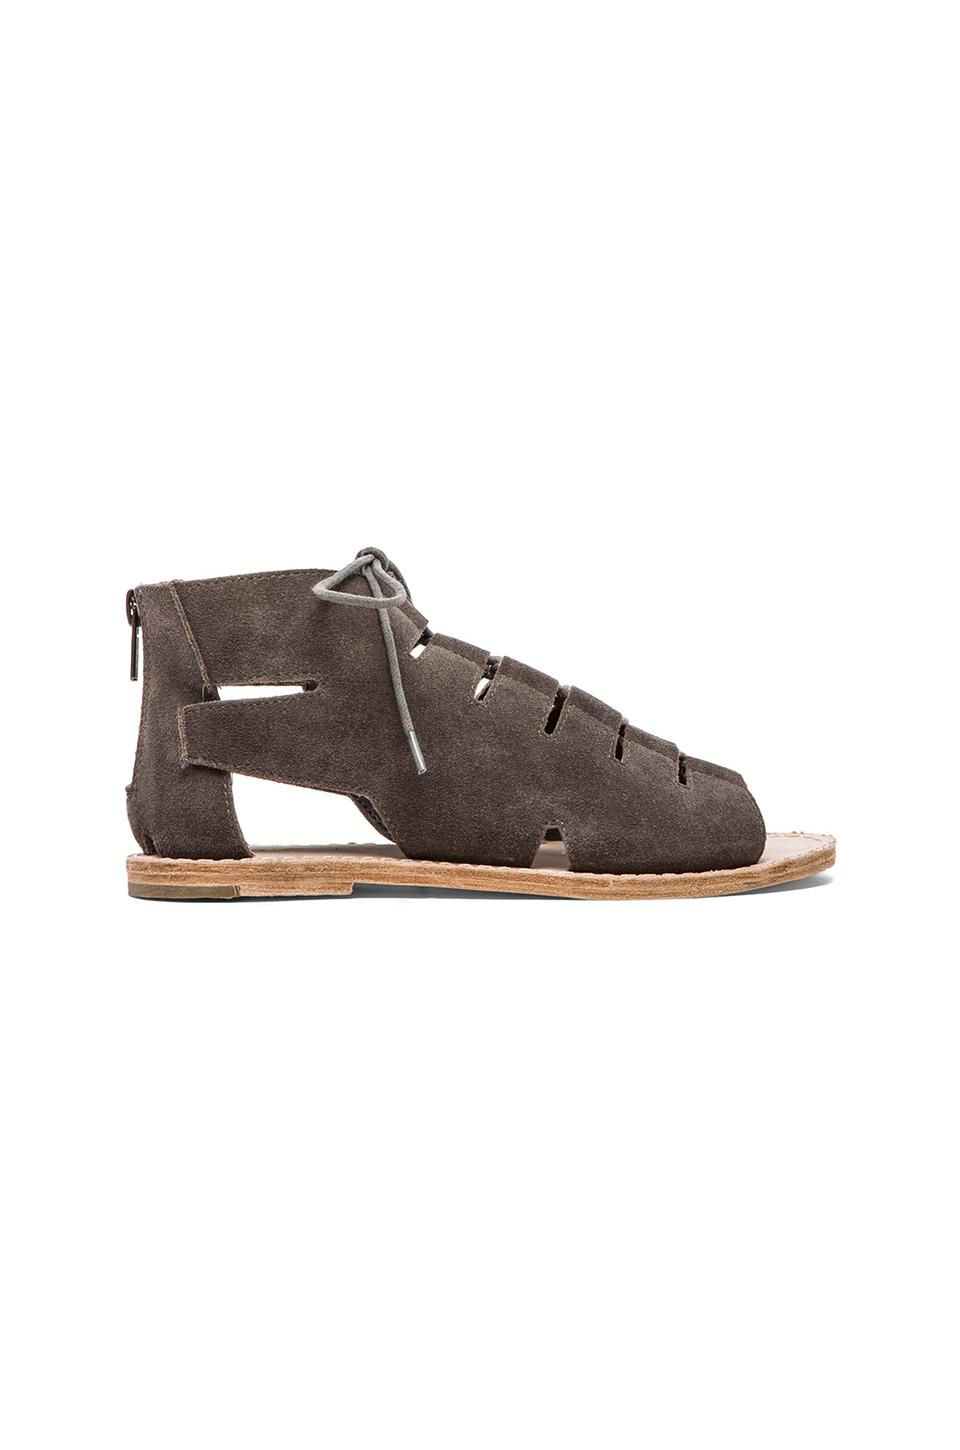 Kelsi Dagger Krypton Sandal in Stone Grey